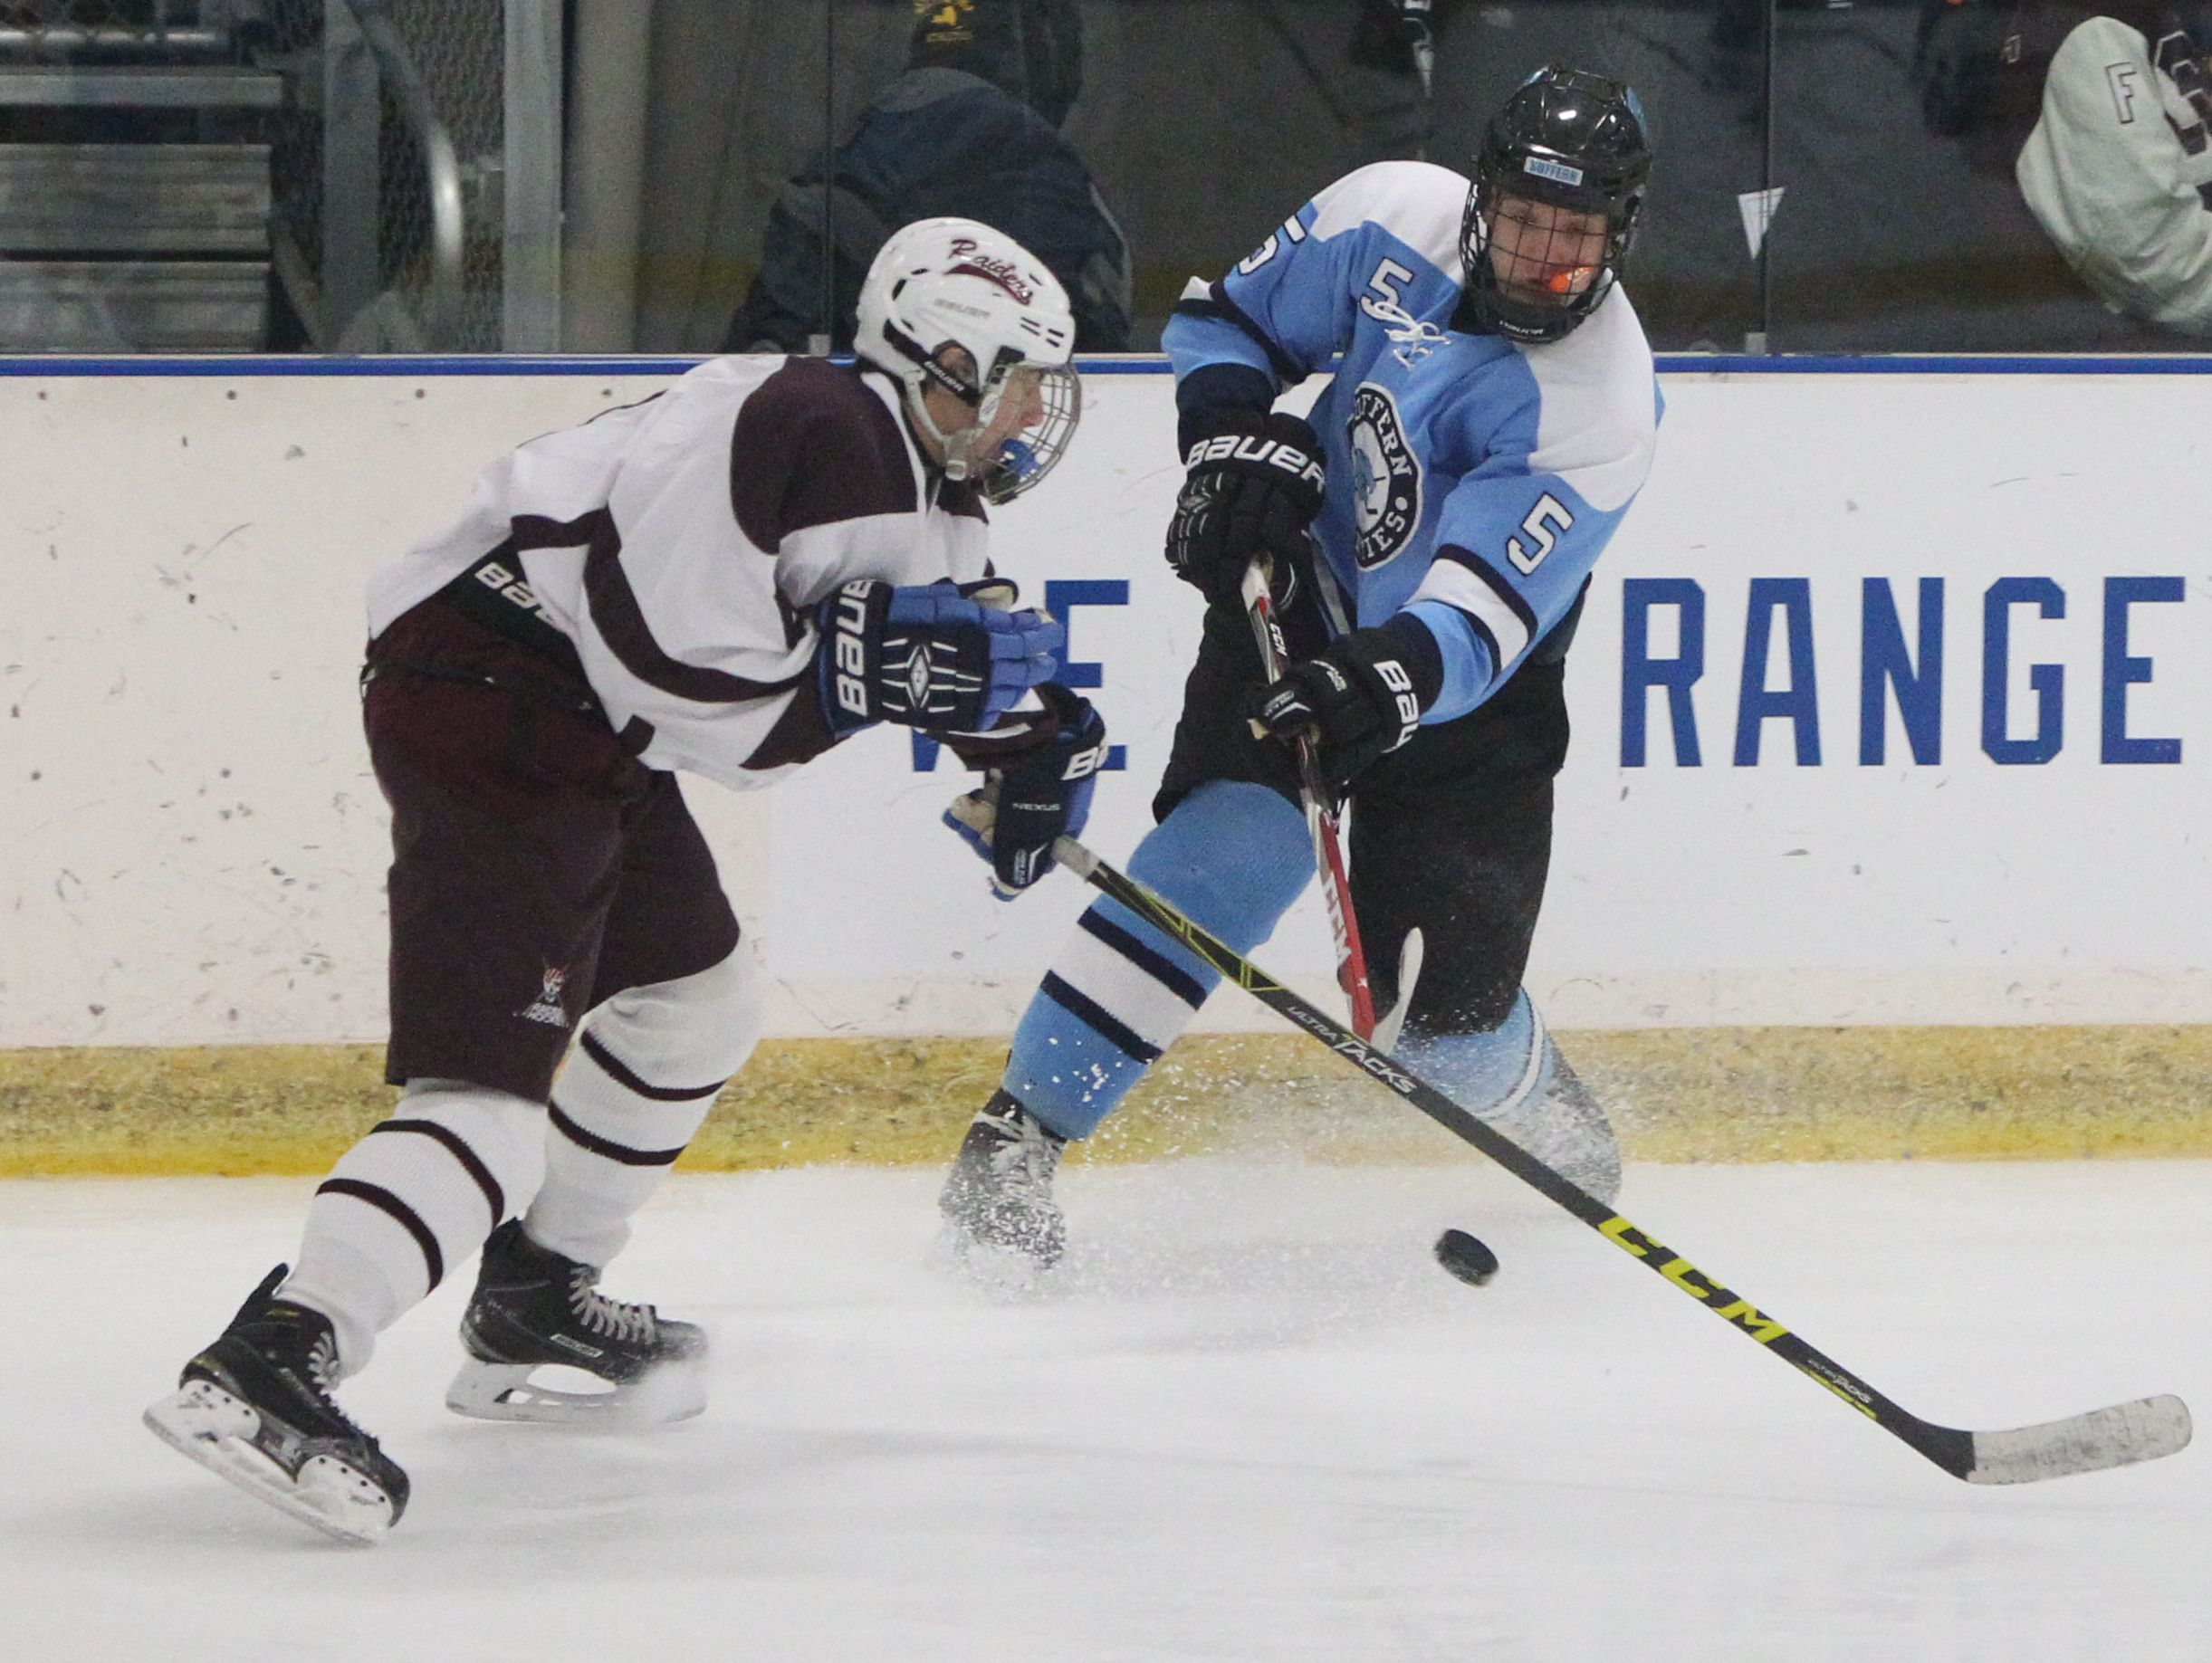 Scarsdale's Robbie Kramer pressures Suffern's David Rozitis during their game at the E.J. Murray rink in Yonkers Dec. 7, 2015. Scarsdale won 1-0.